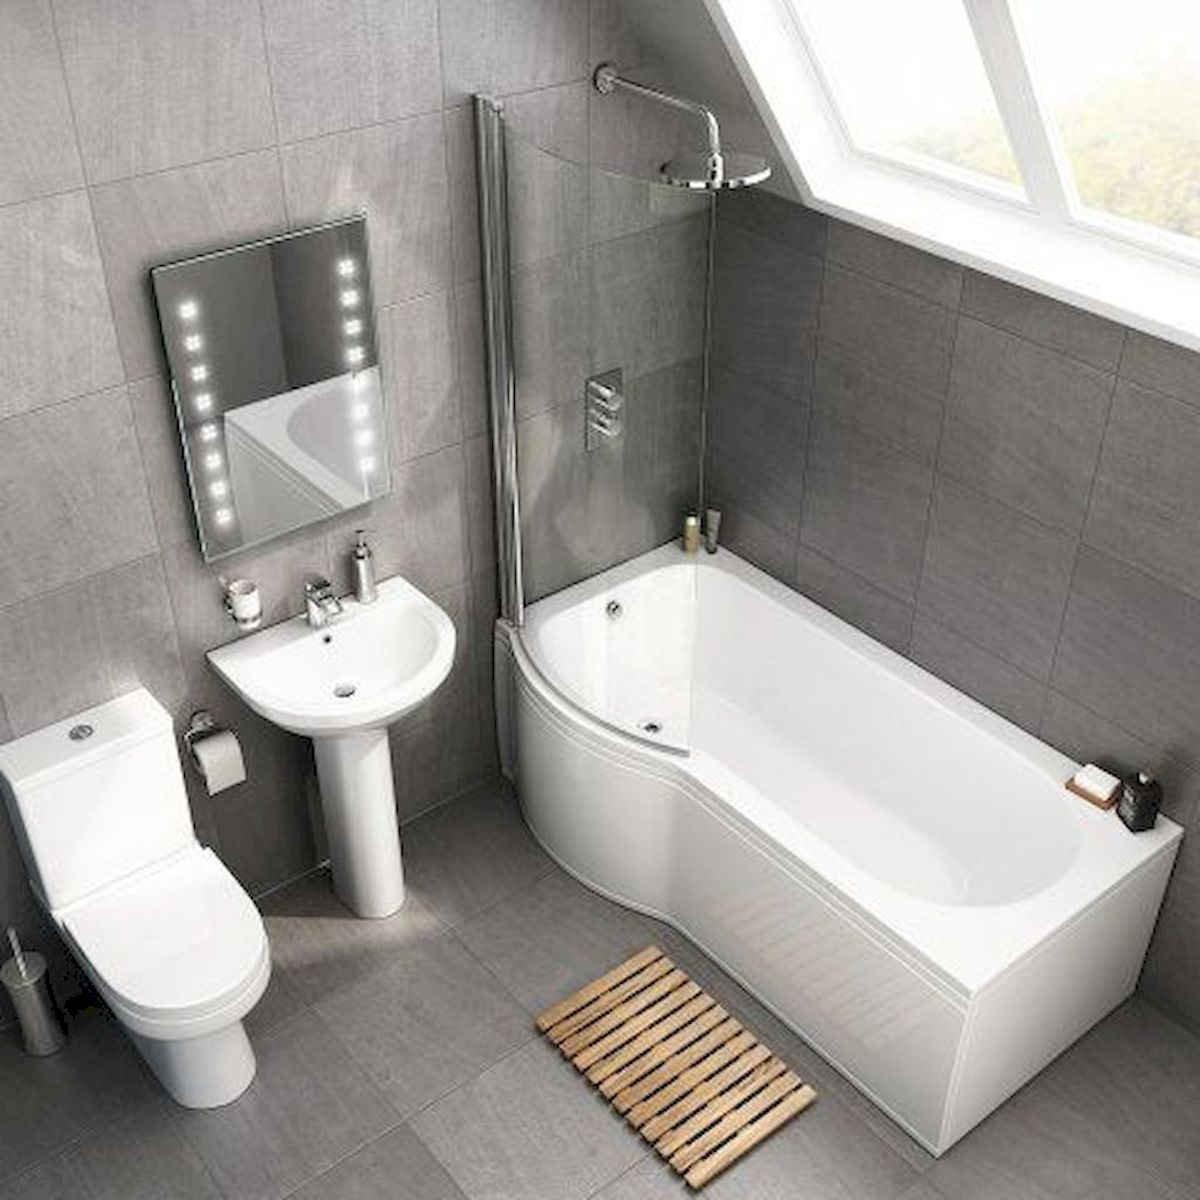 30 Stunning Small Bathroom Ideas On A Budget